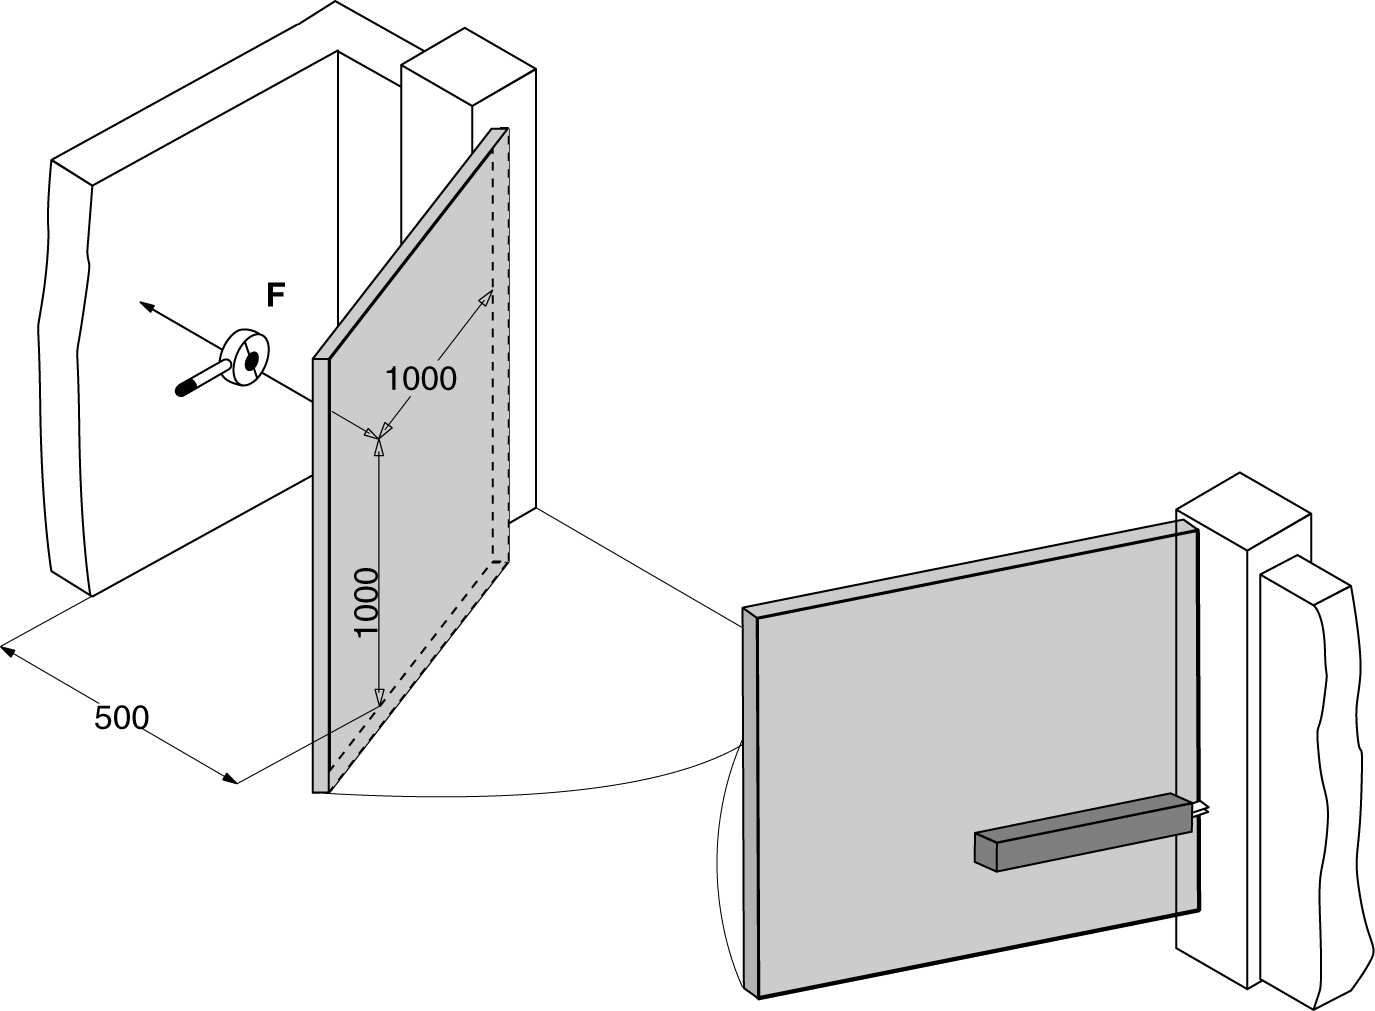 Test points on a swinging gate